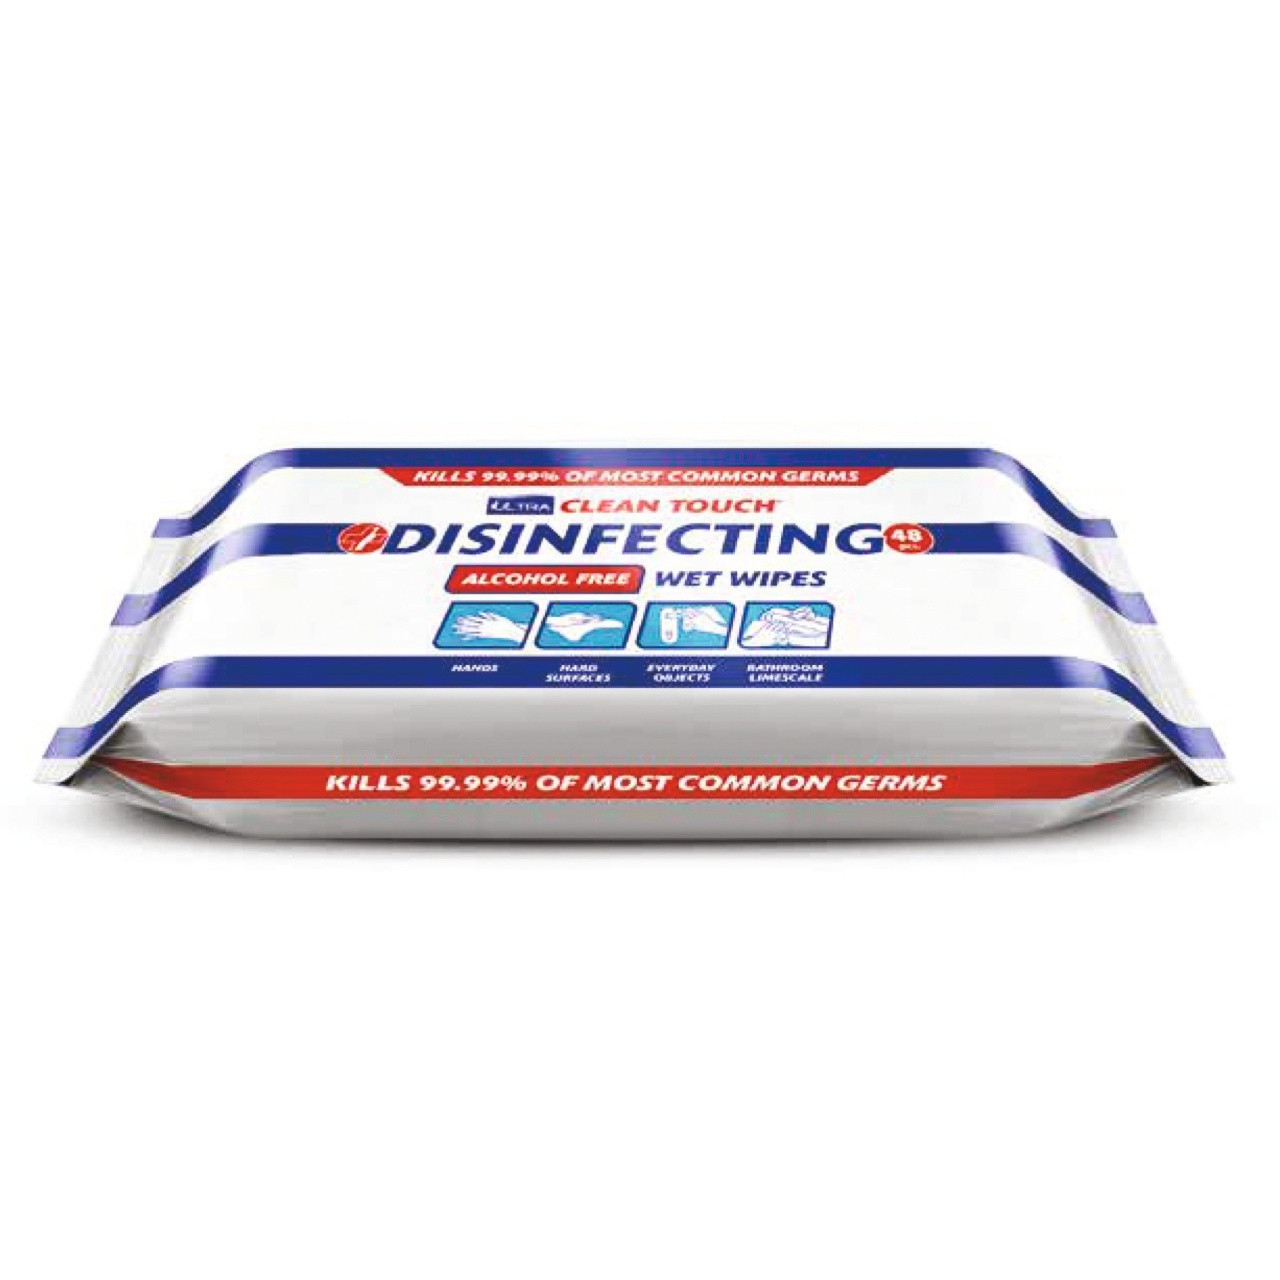 Ultra Clean Touch Disinfectant Wipes - Coming soon. Pre-order now!